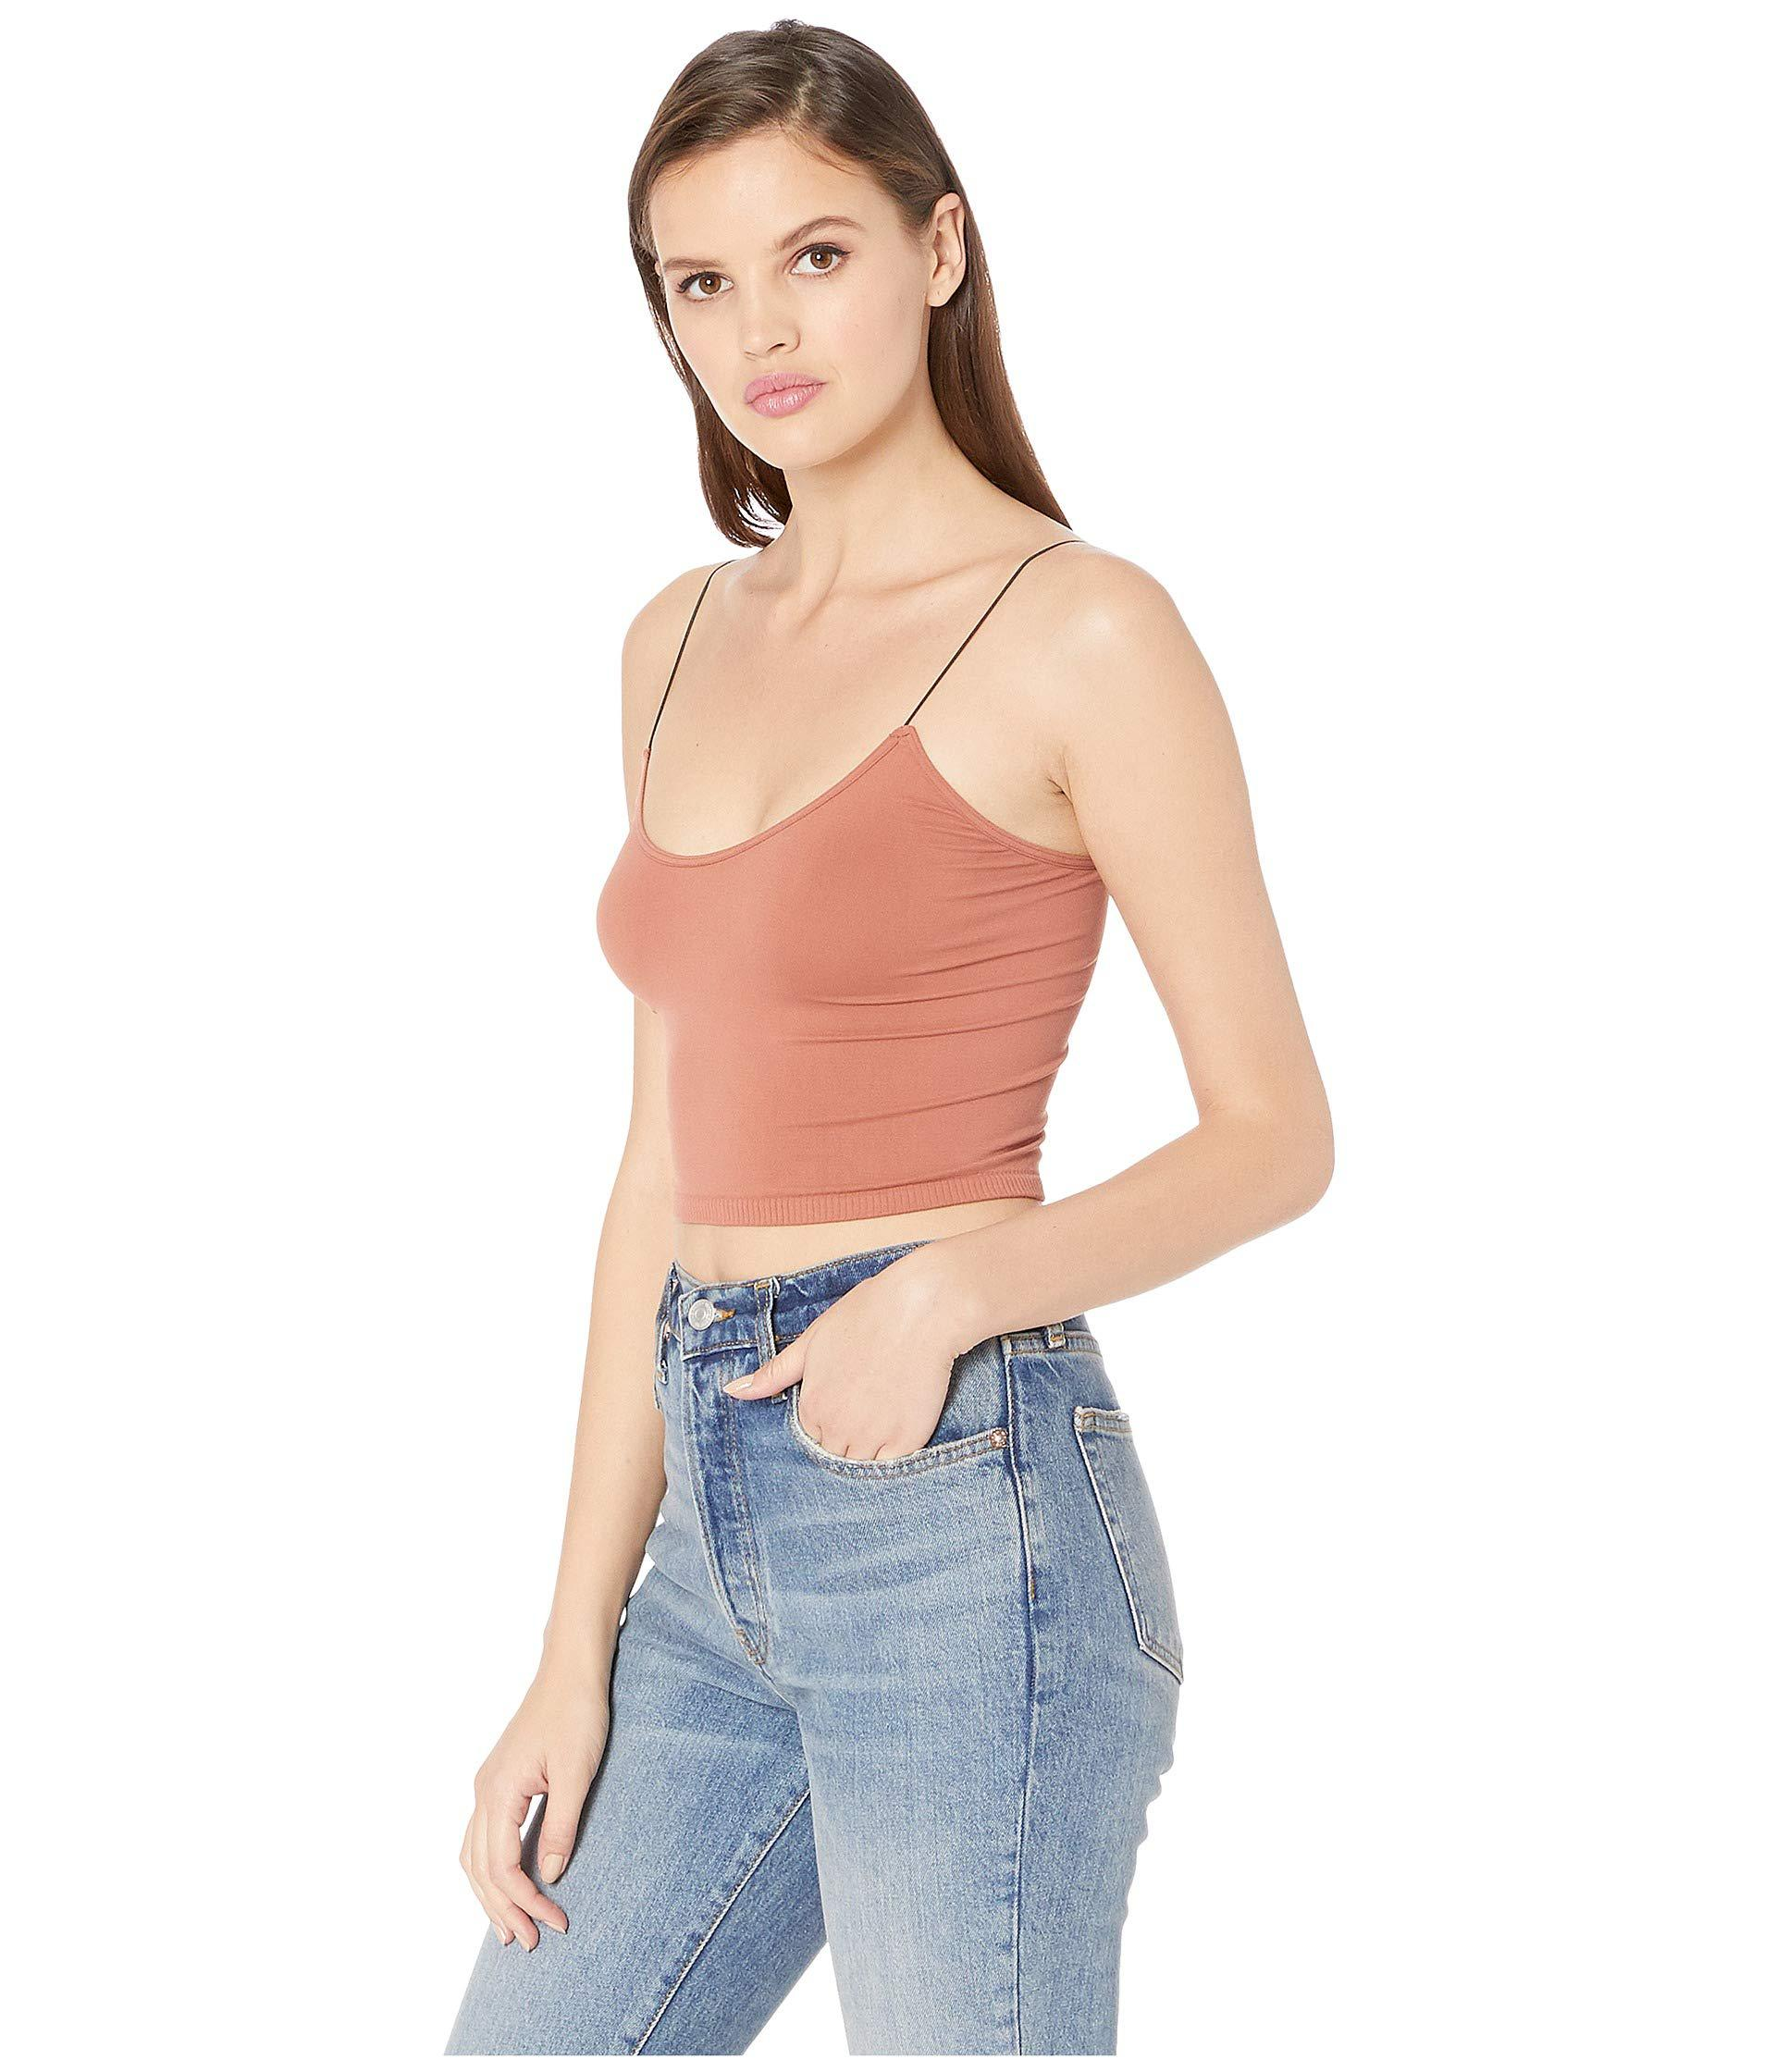 ad5f69842c308 Lyst - Free People Seamless Skinny Strap Crop Cami (black) Women s  Sleeveless in Blue